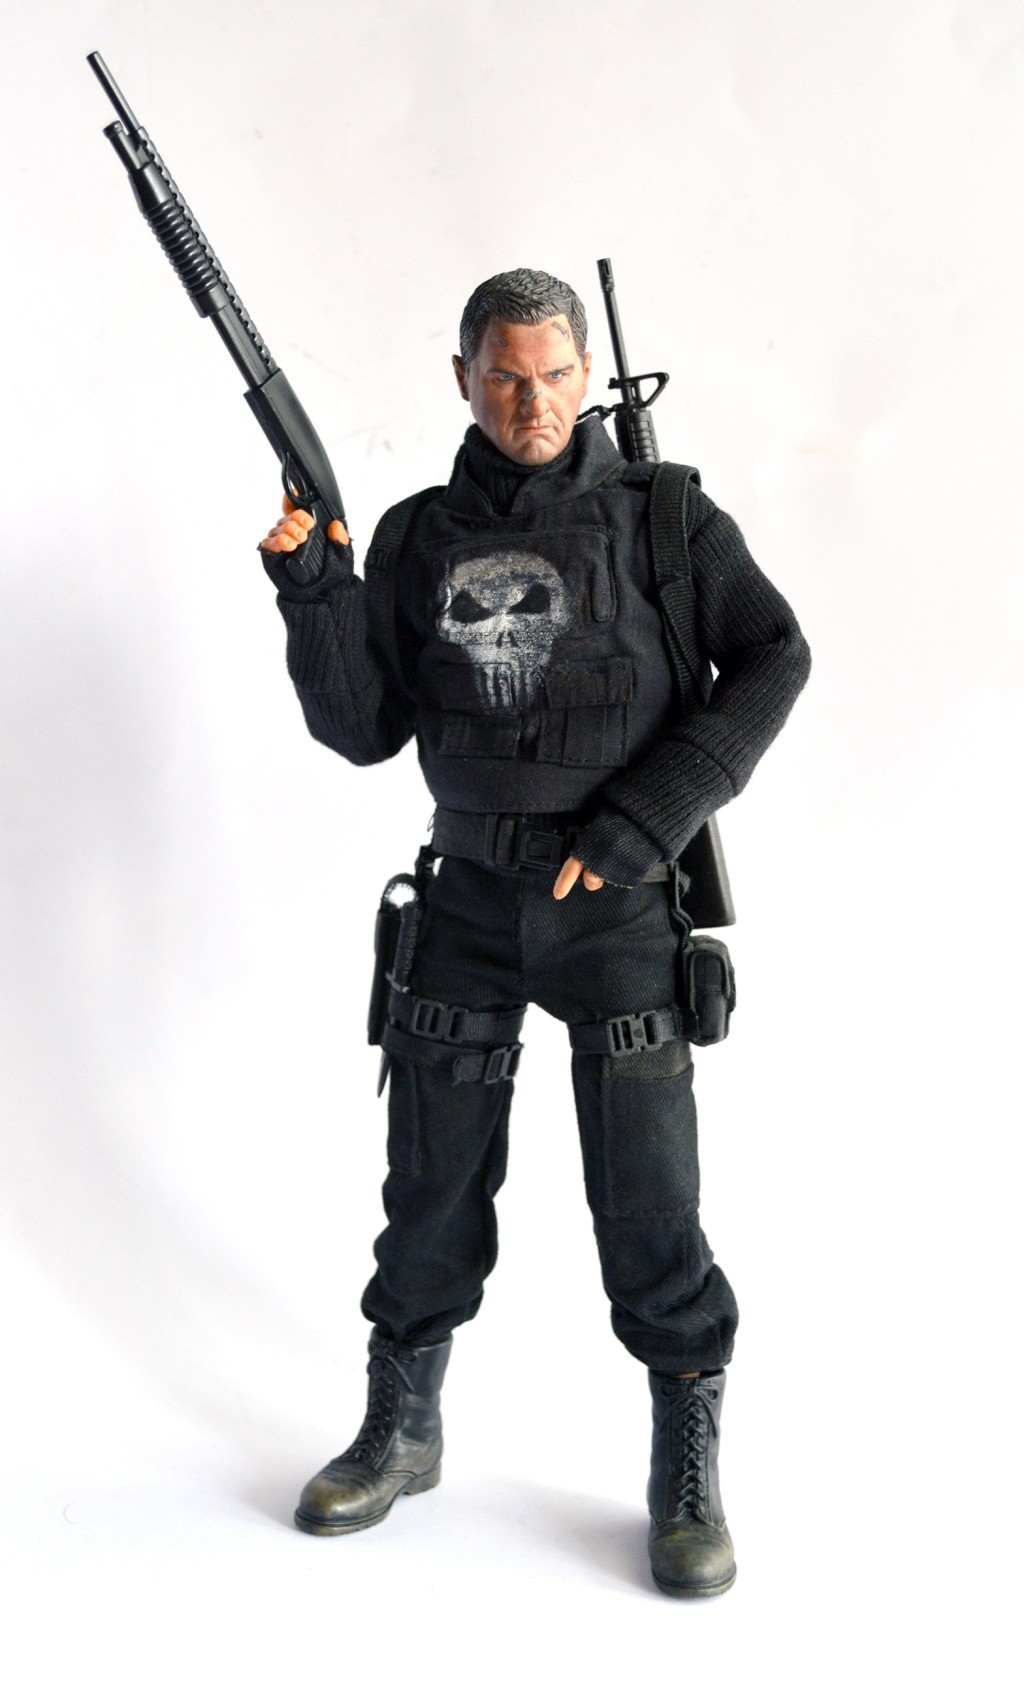 PUNISHER CUSTOM 1/6 12 inch, 30 cm 510